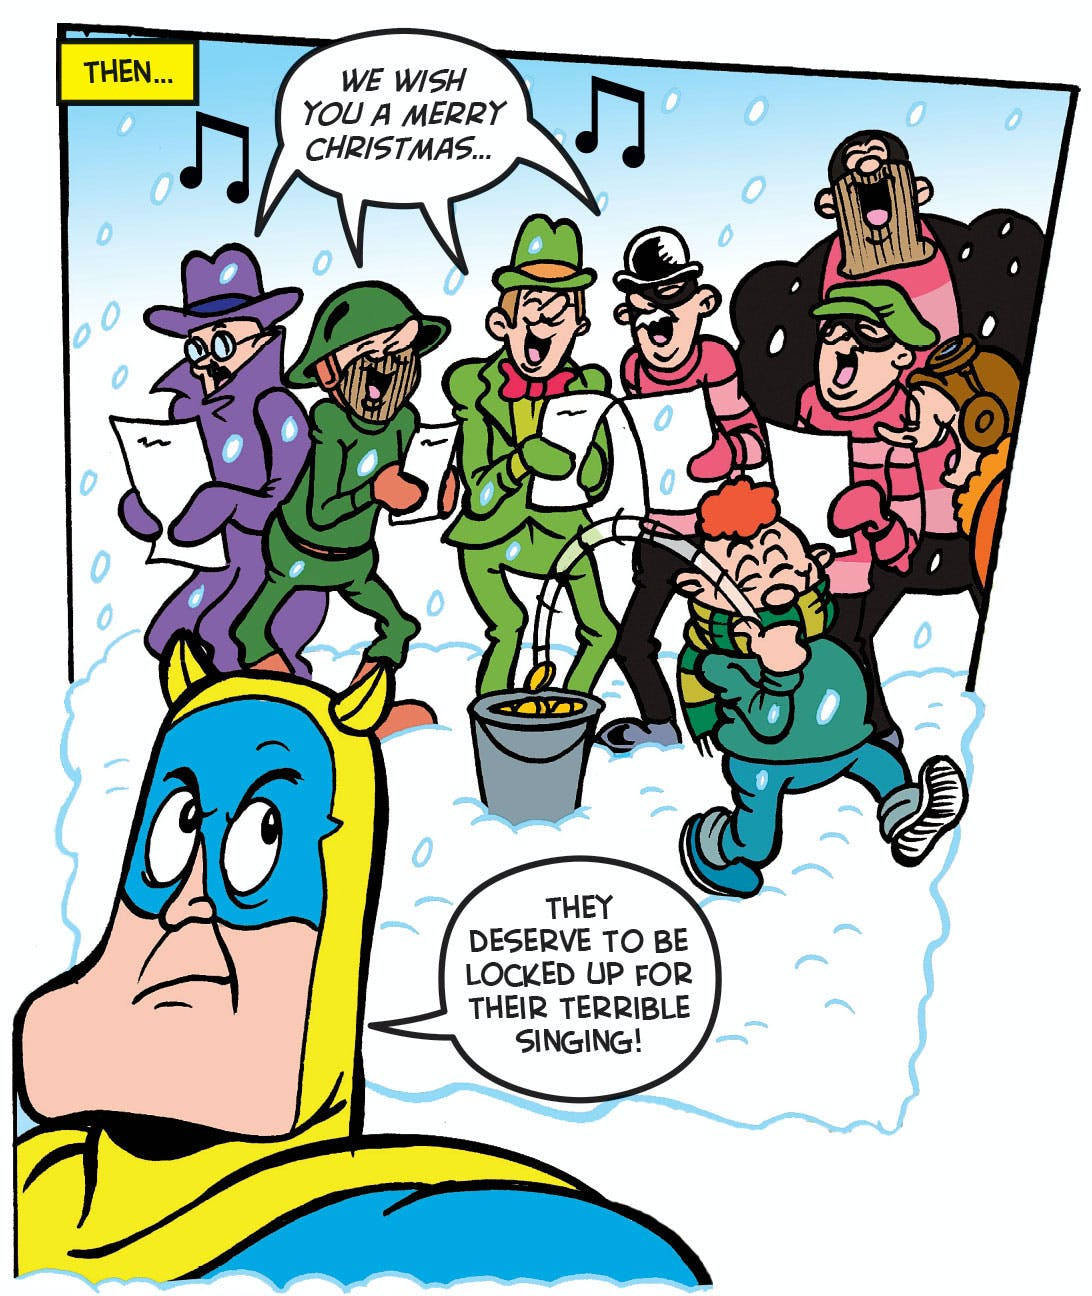 Bananaman tries to catch some cruel carollers